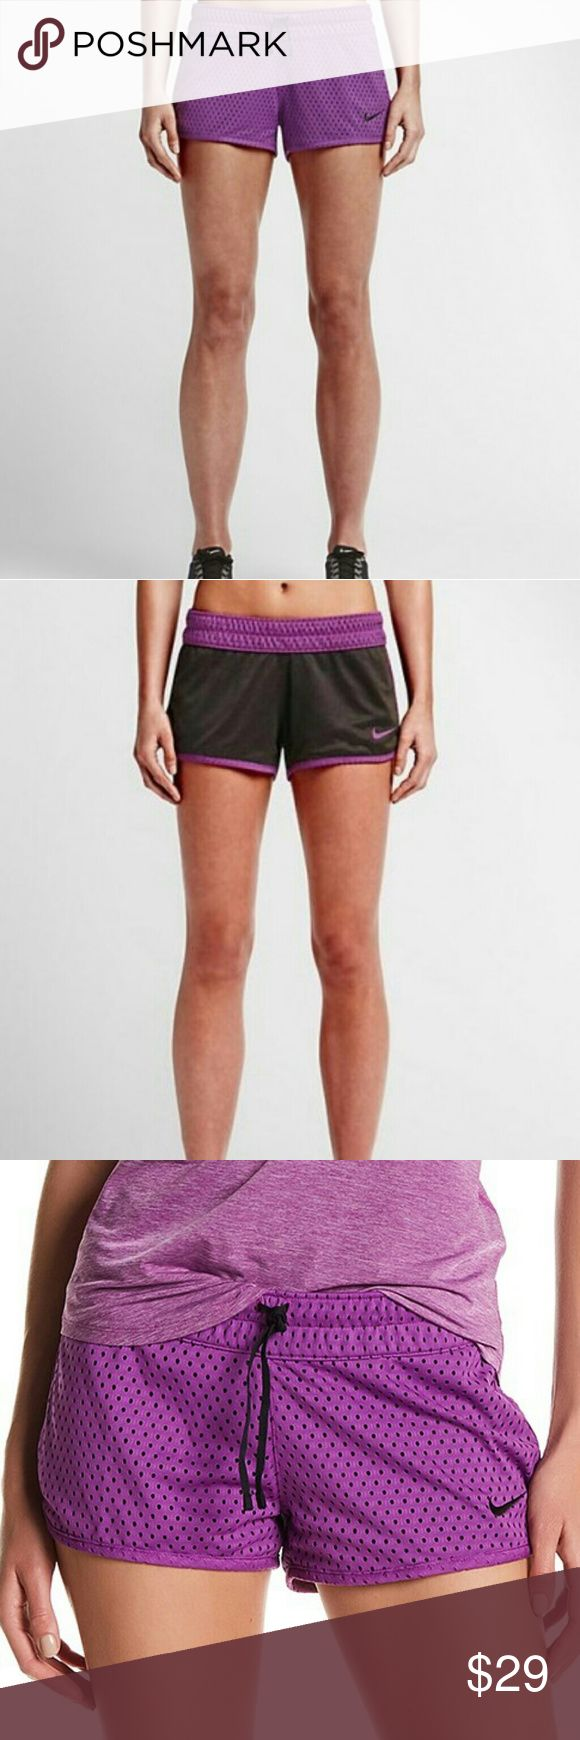 Nike Gym Reversible Shorts TWO LOOKS IN ONE  The Nike Gym Reversible Women's Training Shorts feature mesh on one side and jersey fabric on the reverse for two great looks and ventilated comfort during your workout.  BENEFITS  Dri-FIT fabric helps keep you dry and comfortable  Mesh fabric provides ventilation  Reversible design offers two great looks  Elastic waistband with drawcord for a secure fit  Shaped hem curves up slightly on the hip to enhance mobility  PRODUCT DETAILS  Fabric…